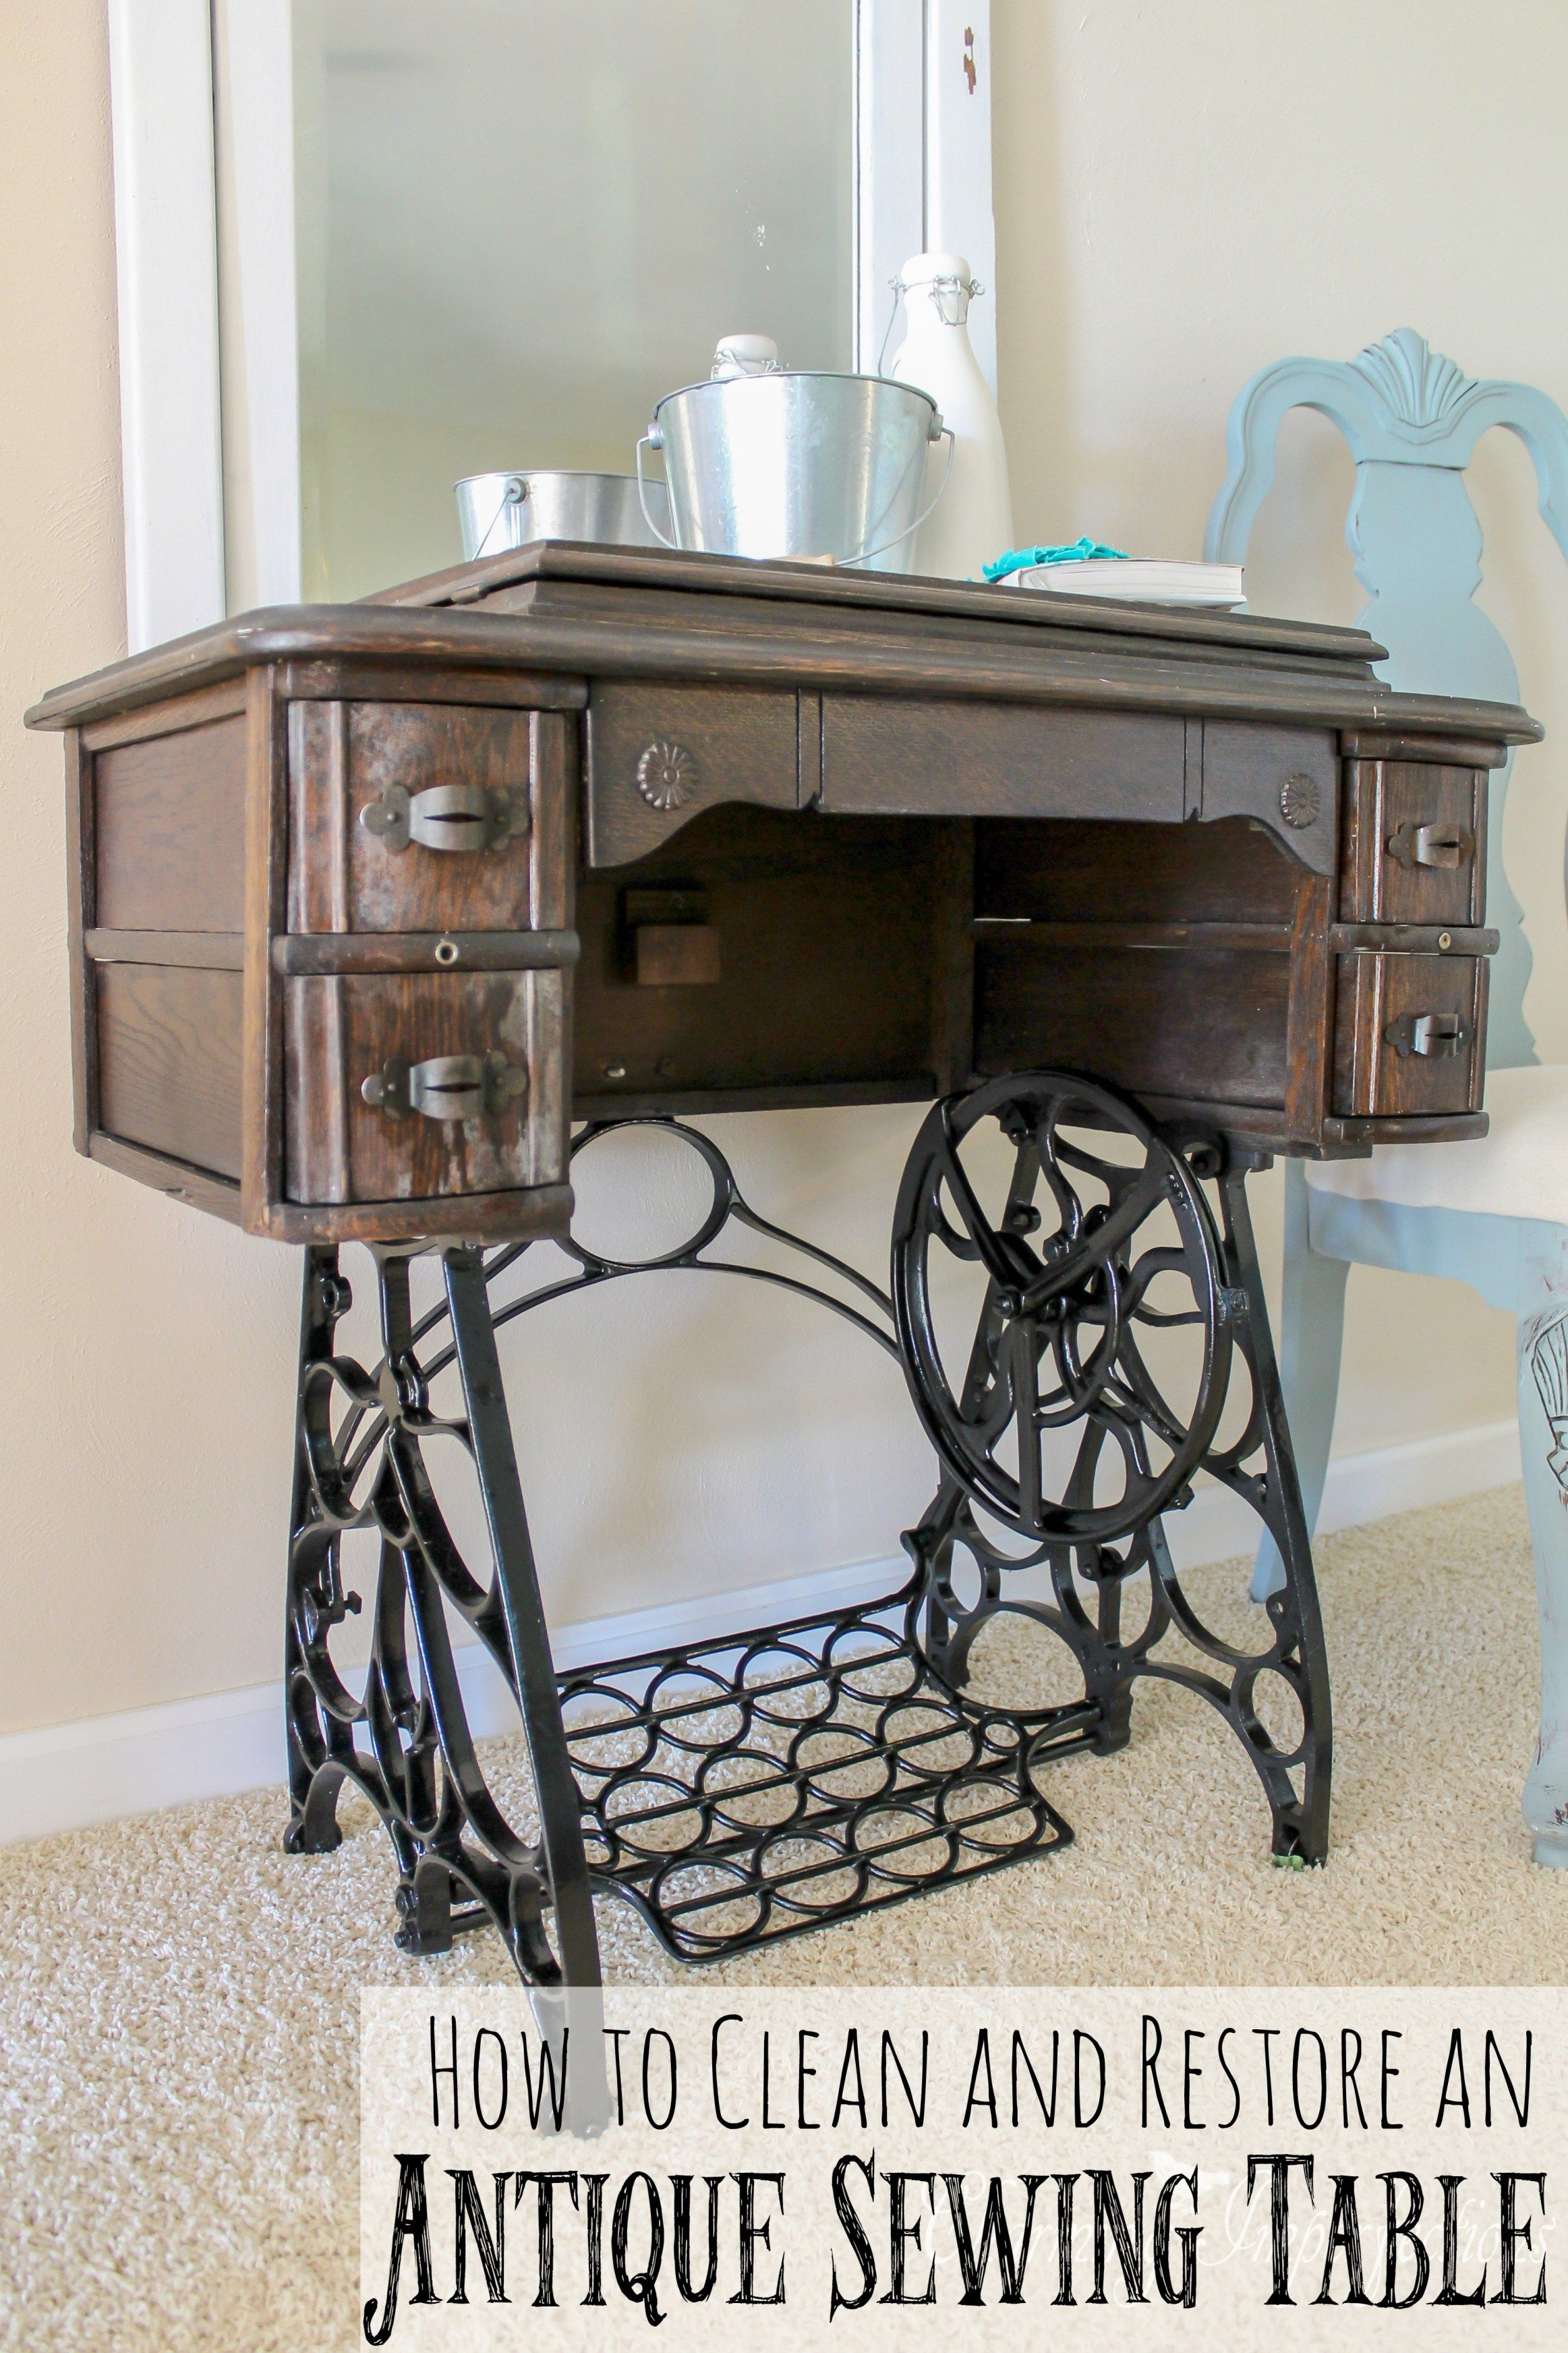 Antique Sewing Table Gets Cleaned And Restored Sewing Table